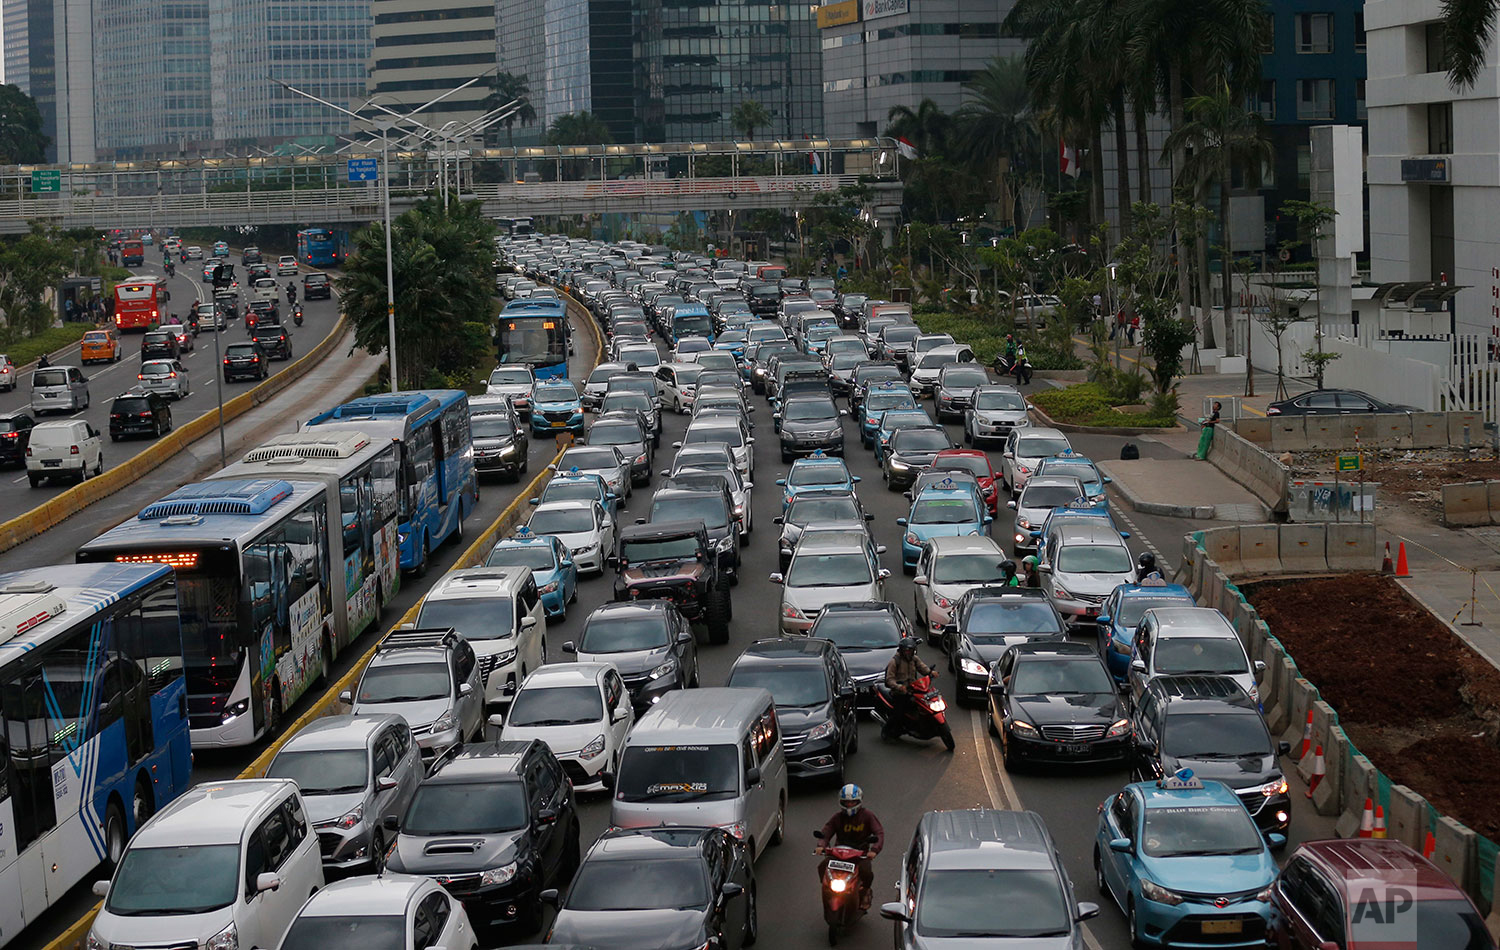 In this Tuesday, Dec. 11. 2018 photo, motorists are stuck in traffic jam during a rush hour at the main business district in Jakarta, Indonesia. (AP Photo/Tatan Syuflana)